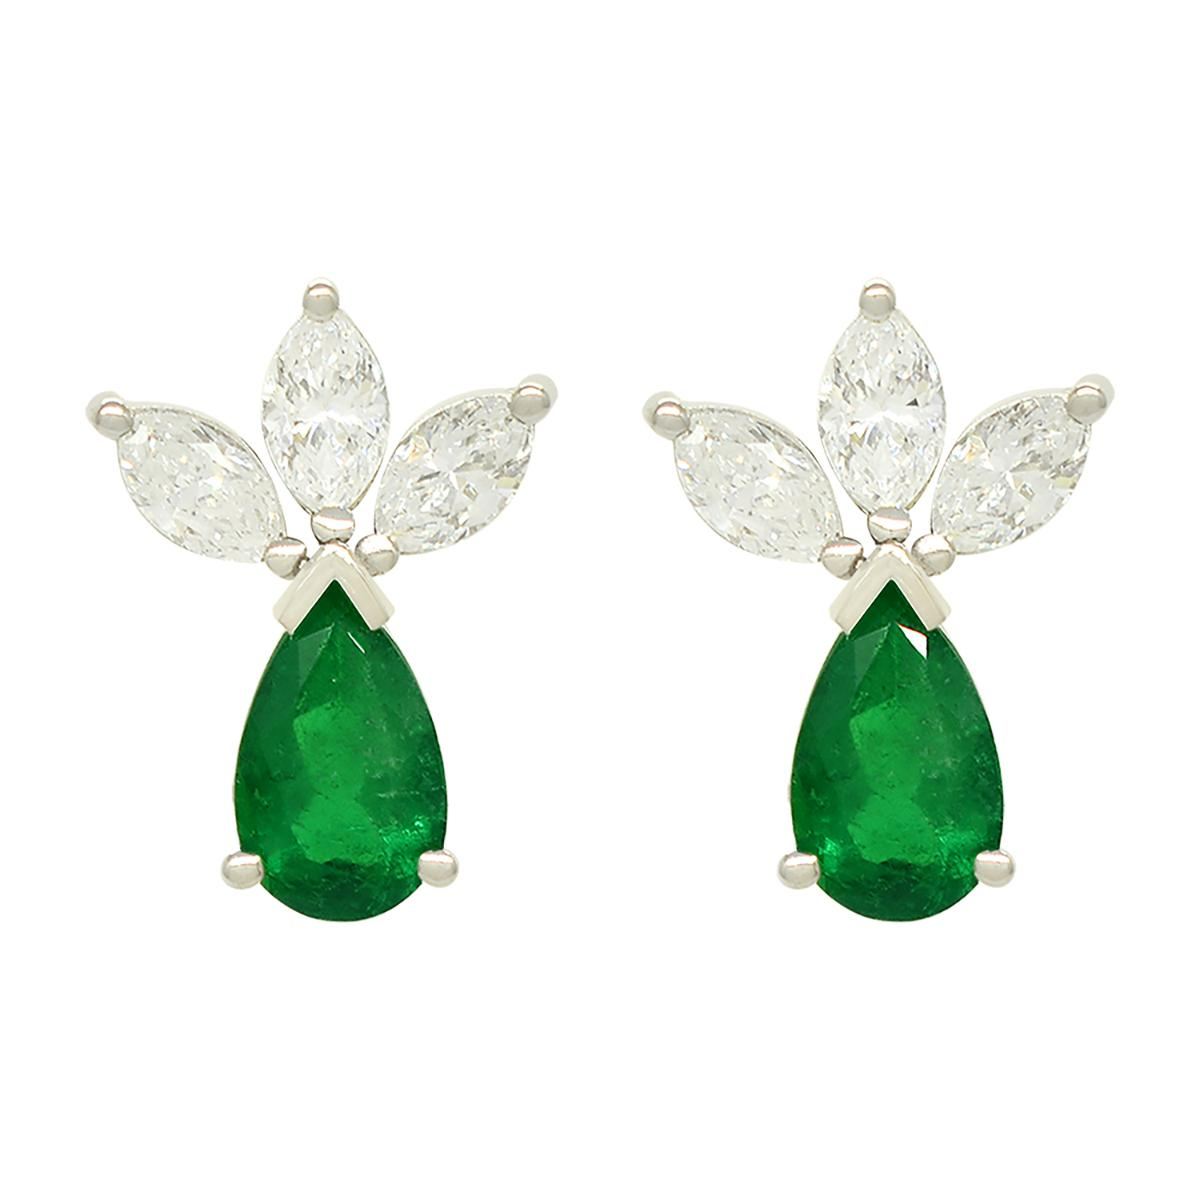 emerald-and-diamond-earrings-in-18k-white-gold-with-pear-emeralds-and-marquise-diamonds